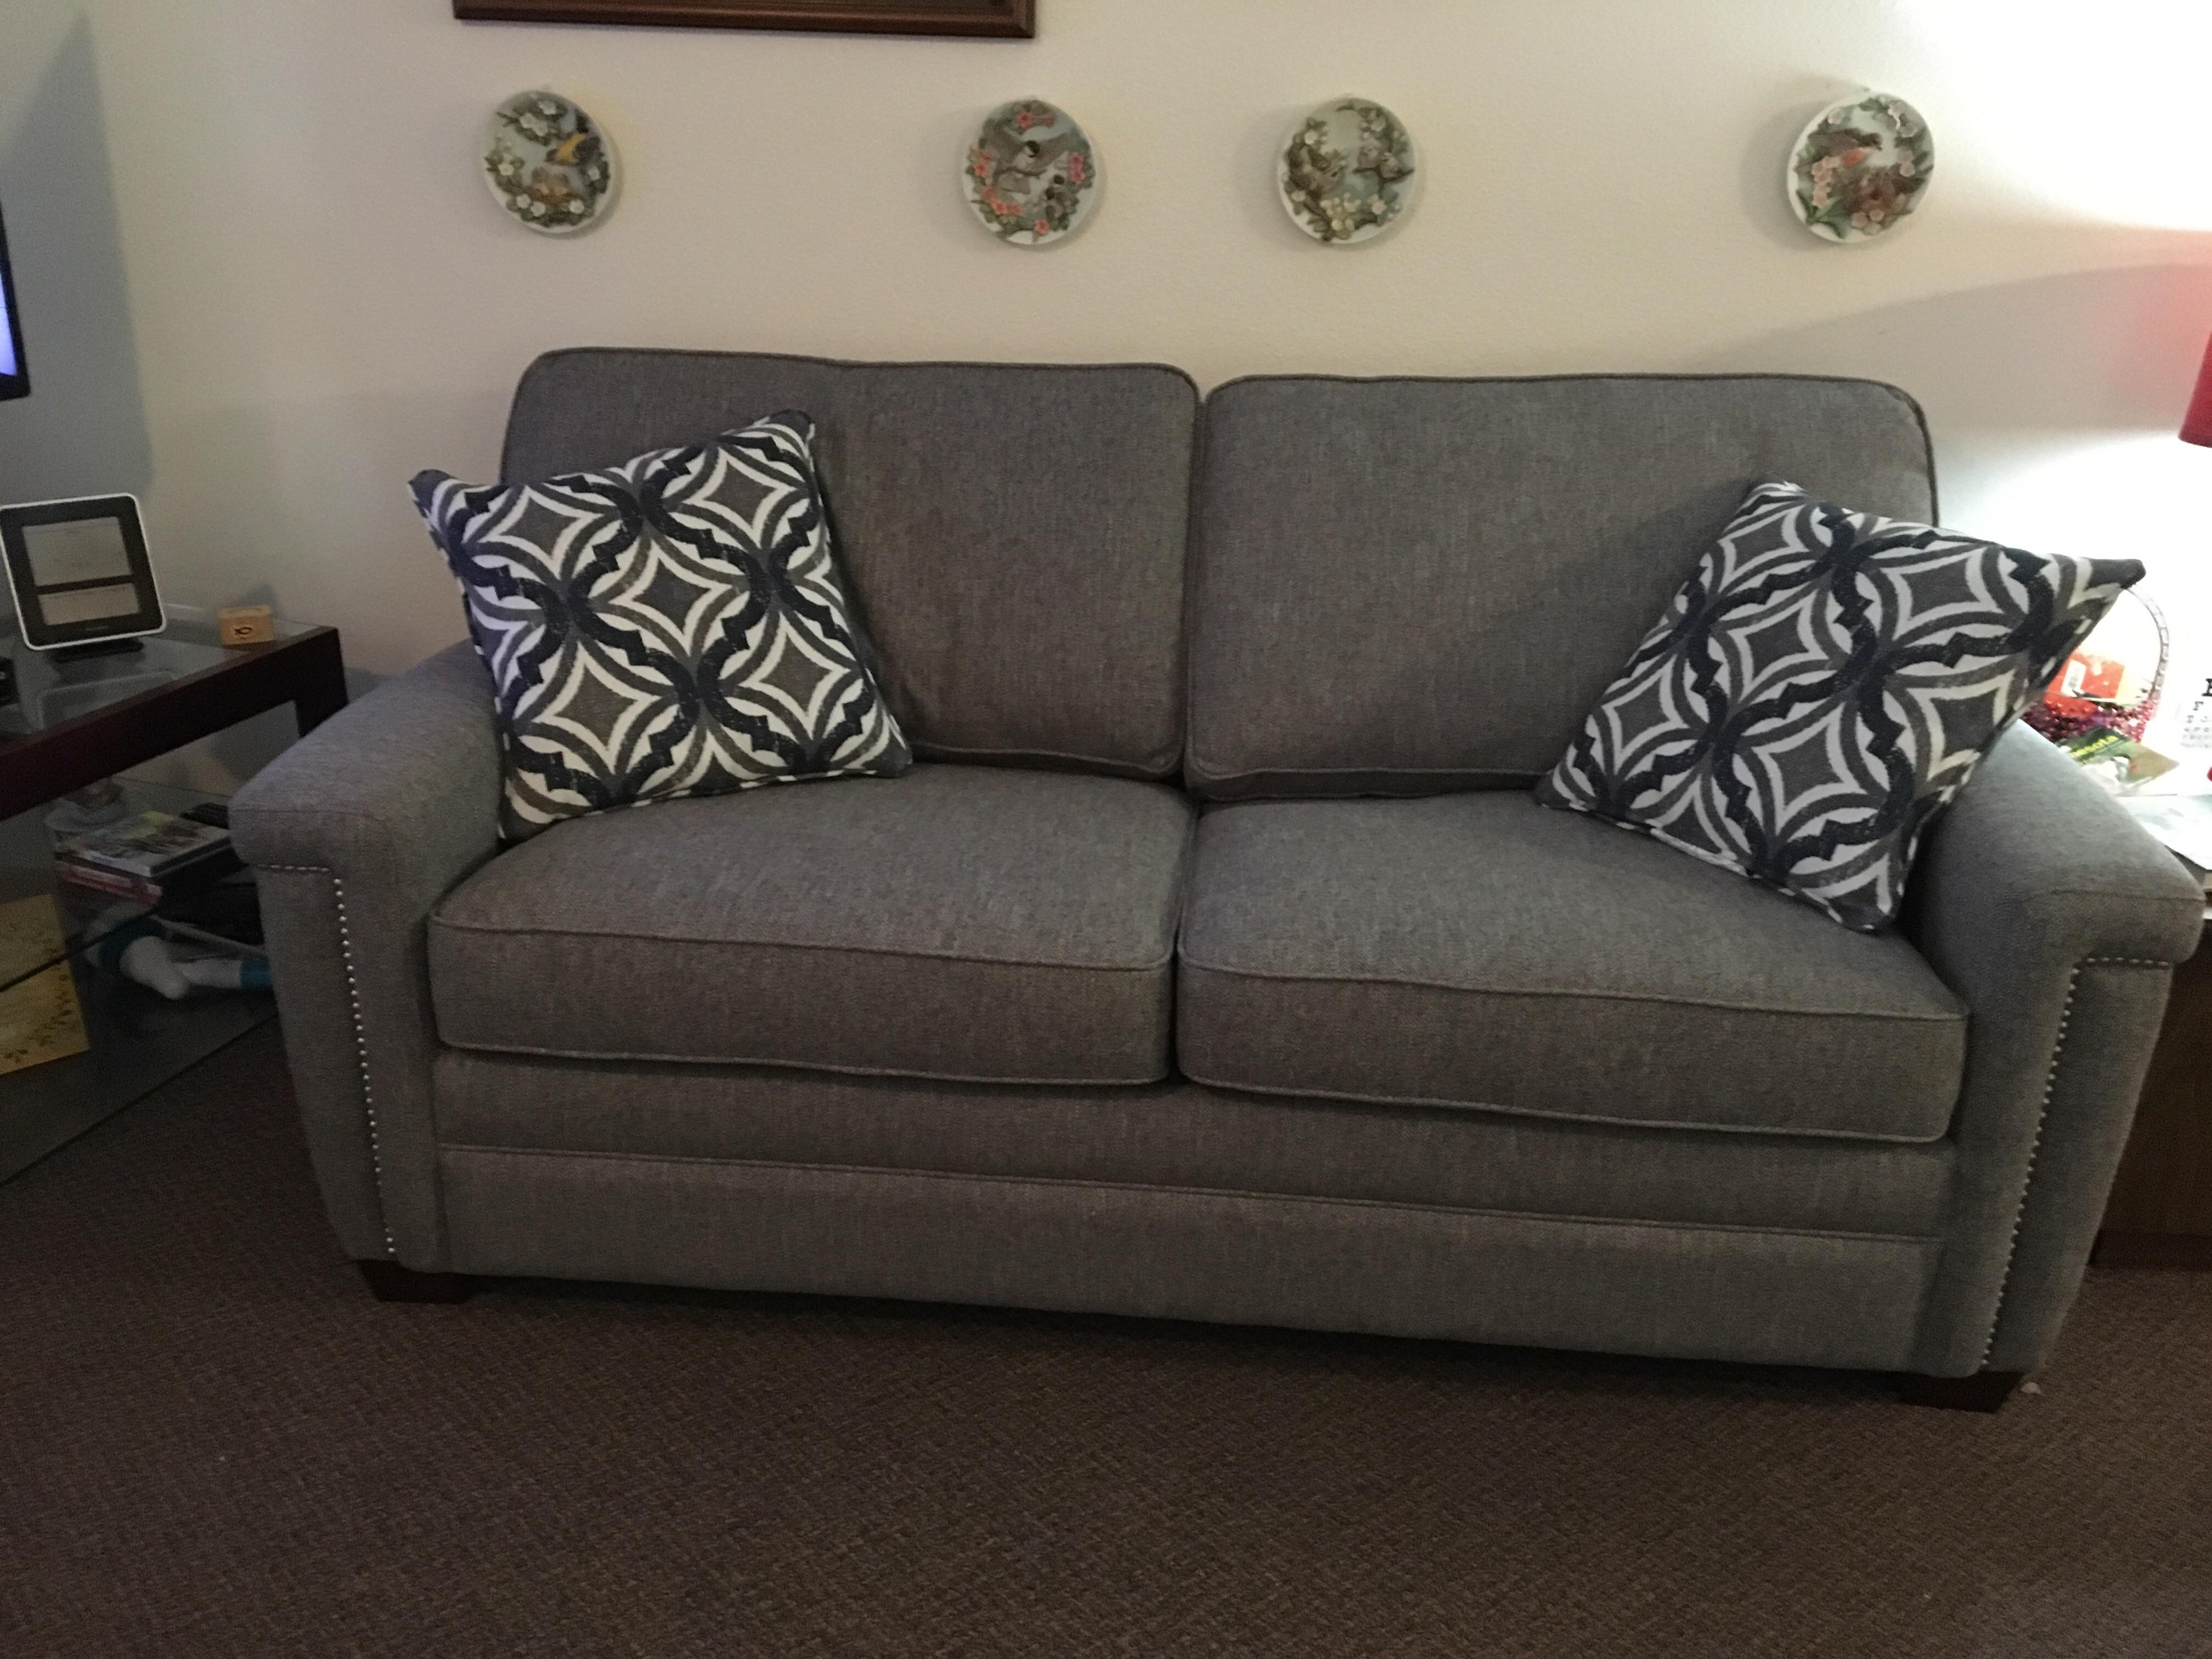 Grandma Bought One Of The Pull Out Couches At Costco Yesterday Great For People Who Need To Sit Higher Up On Furniture 750usd Total Costco